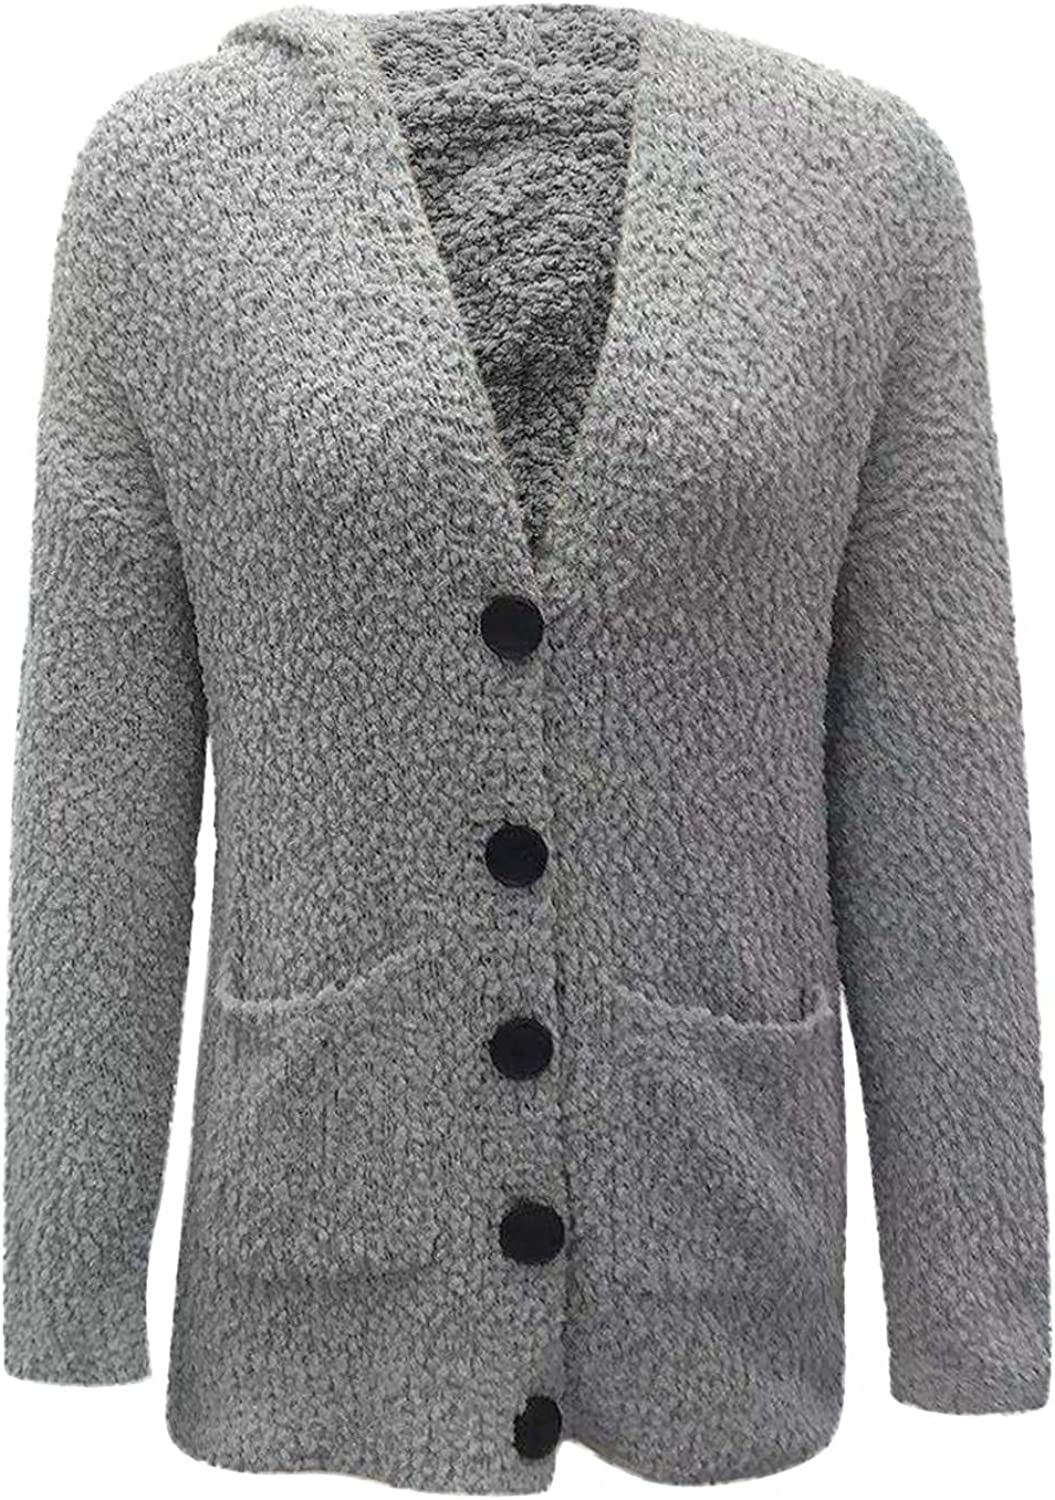 Lee-po-po Womens Hooded Cardigans Button Up Cable Knit Sweater Coat Outerwear with Pockets